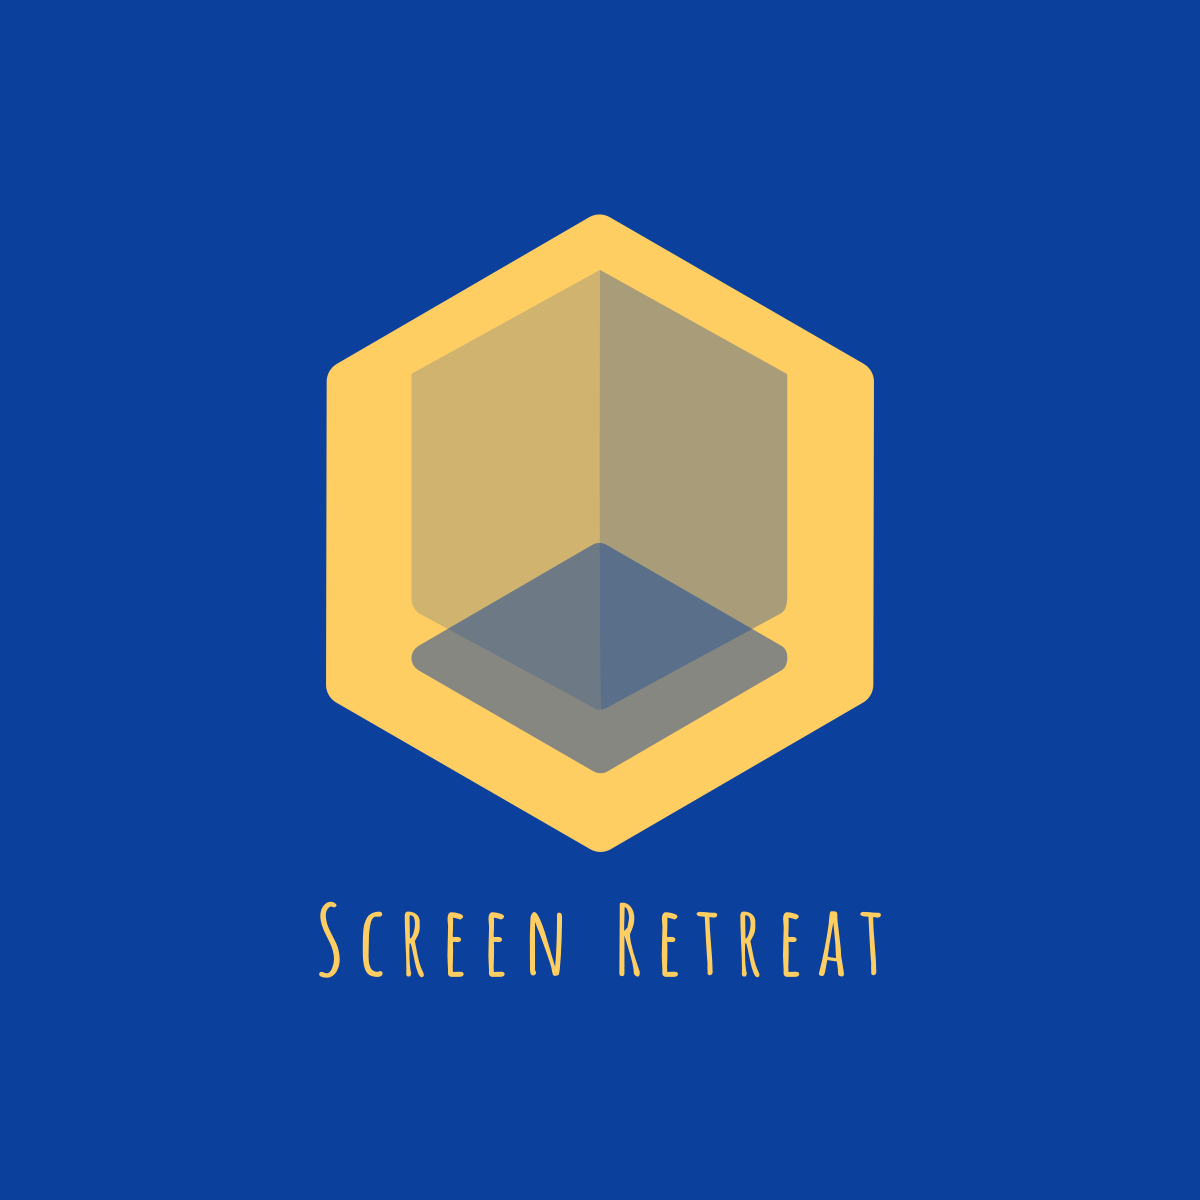 Screen Retreat